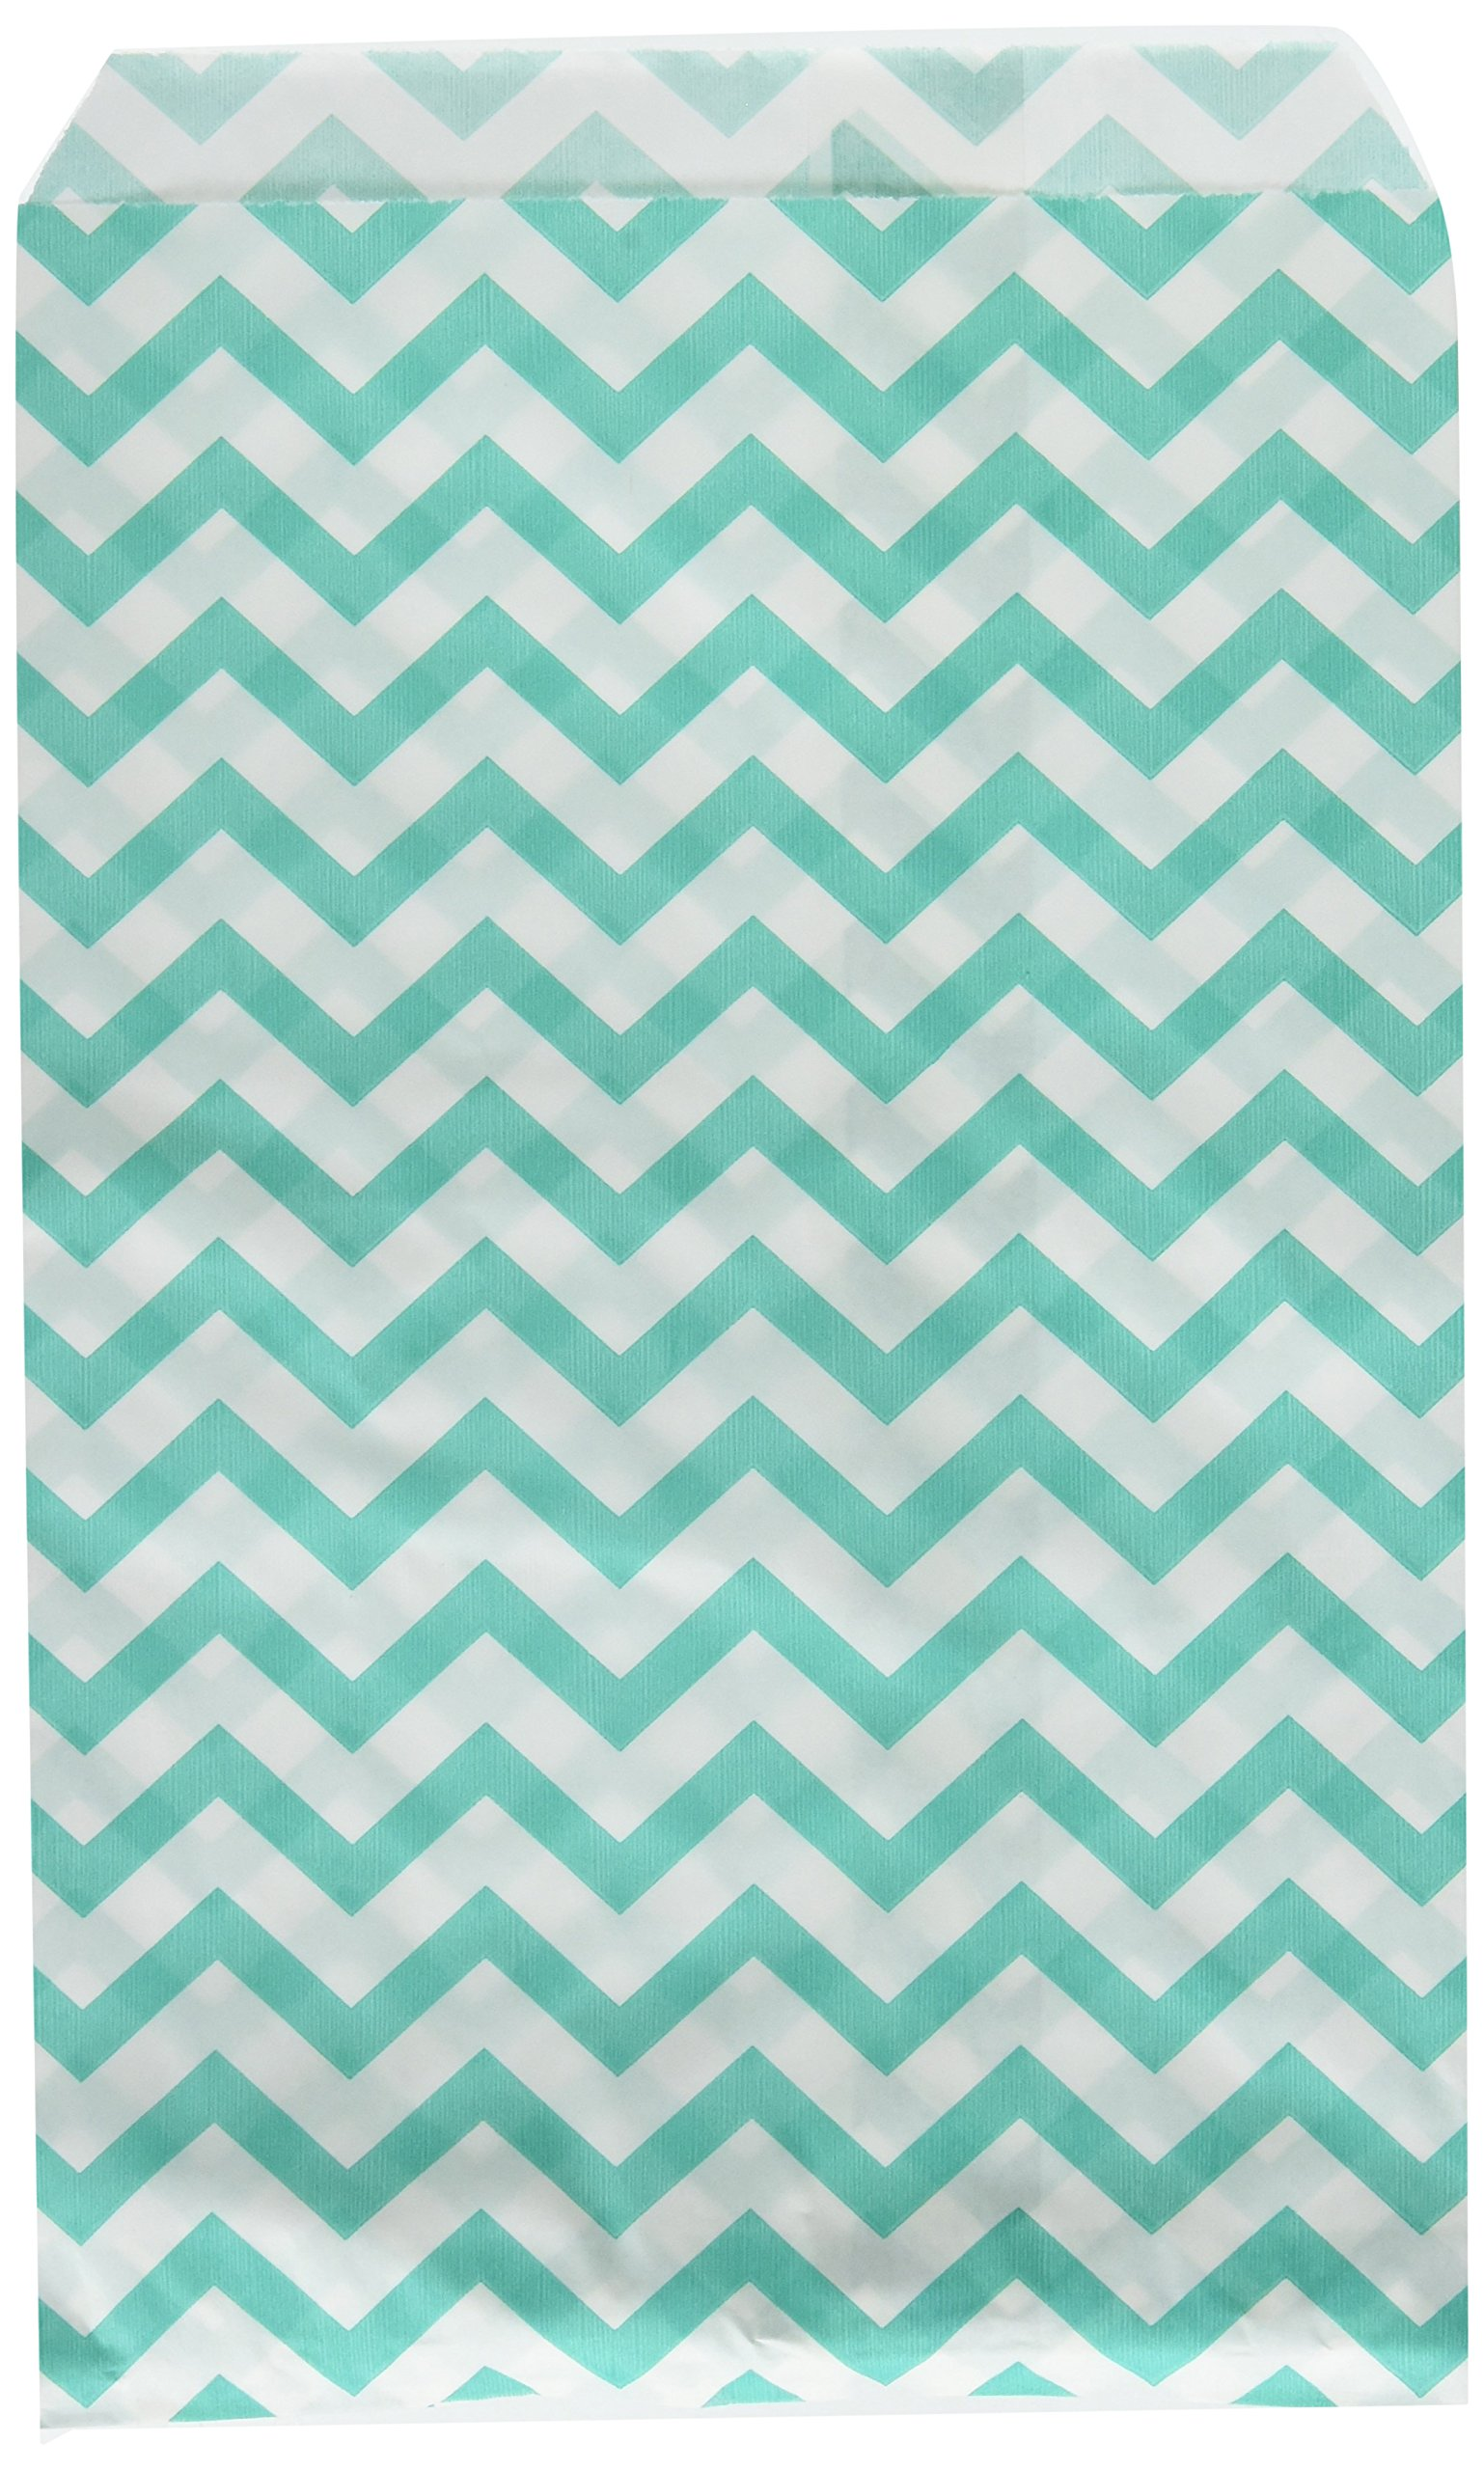 "200 pcs Turquoise Chevron Paper Gift Bags Shopping Sales Tote Bags 6"" x 9"" Zig Zag Design-Caddy Bay Collection"